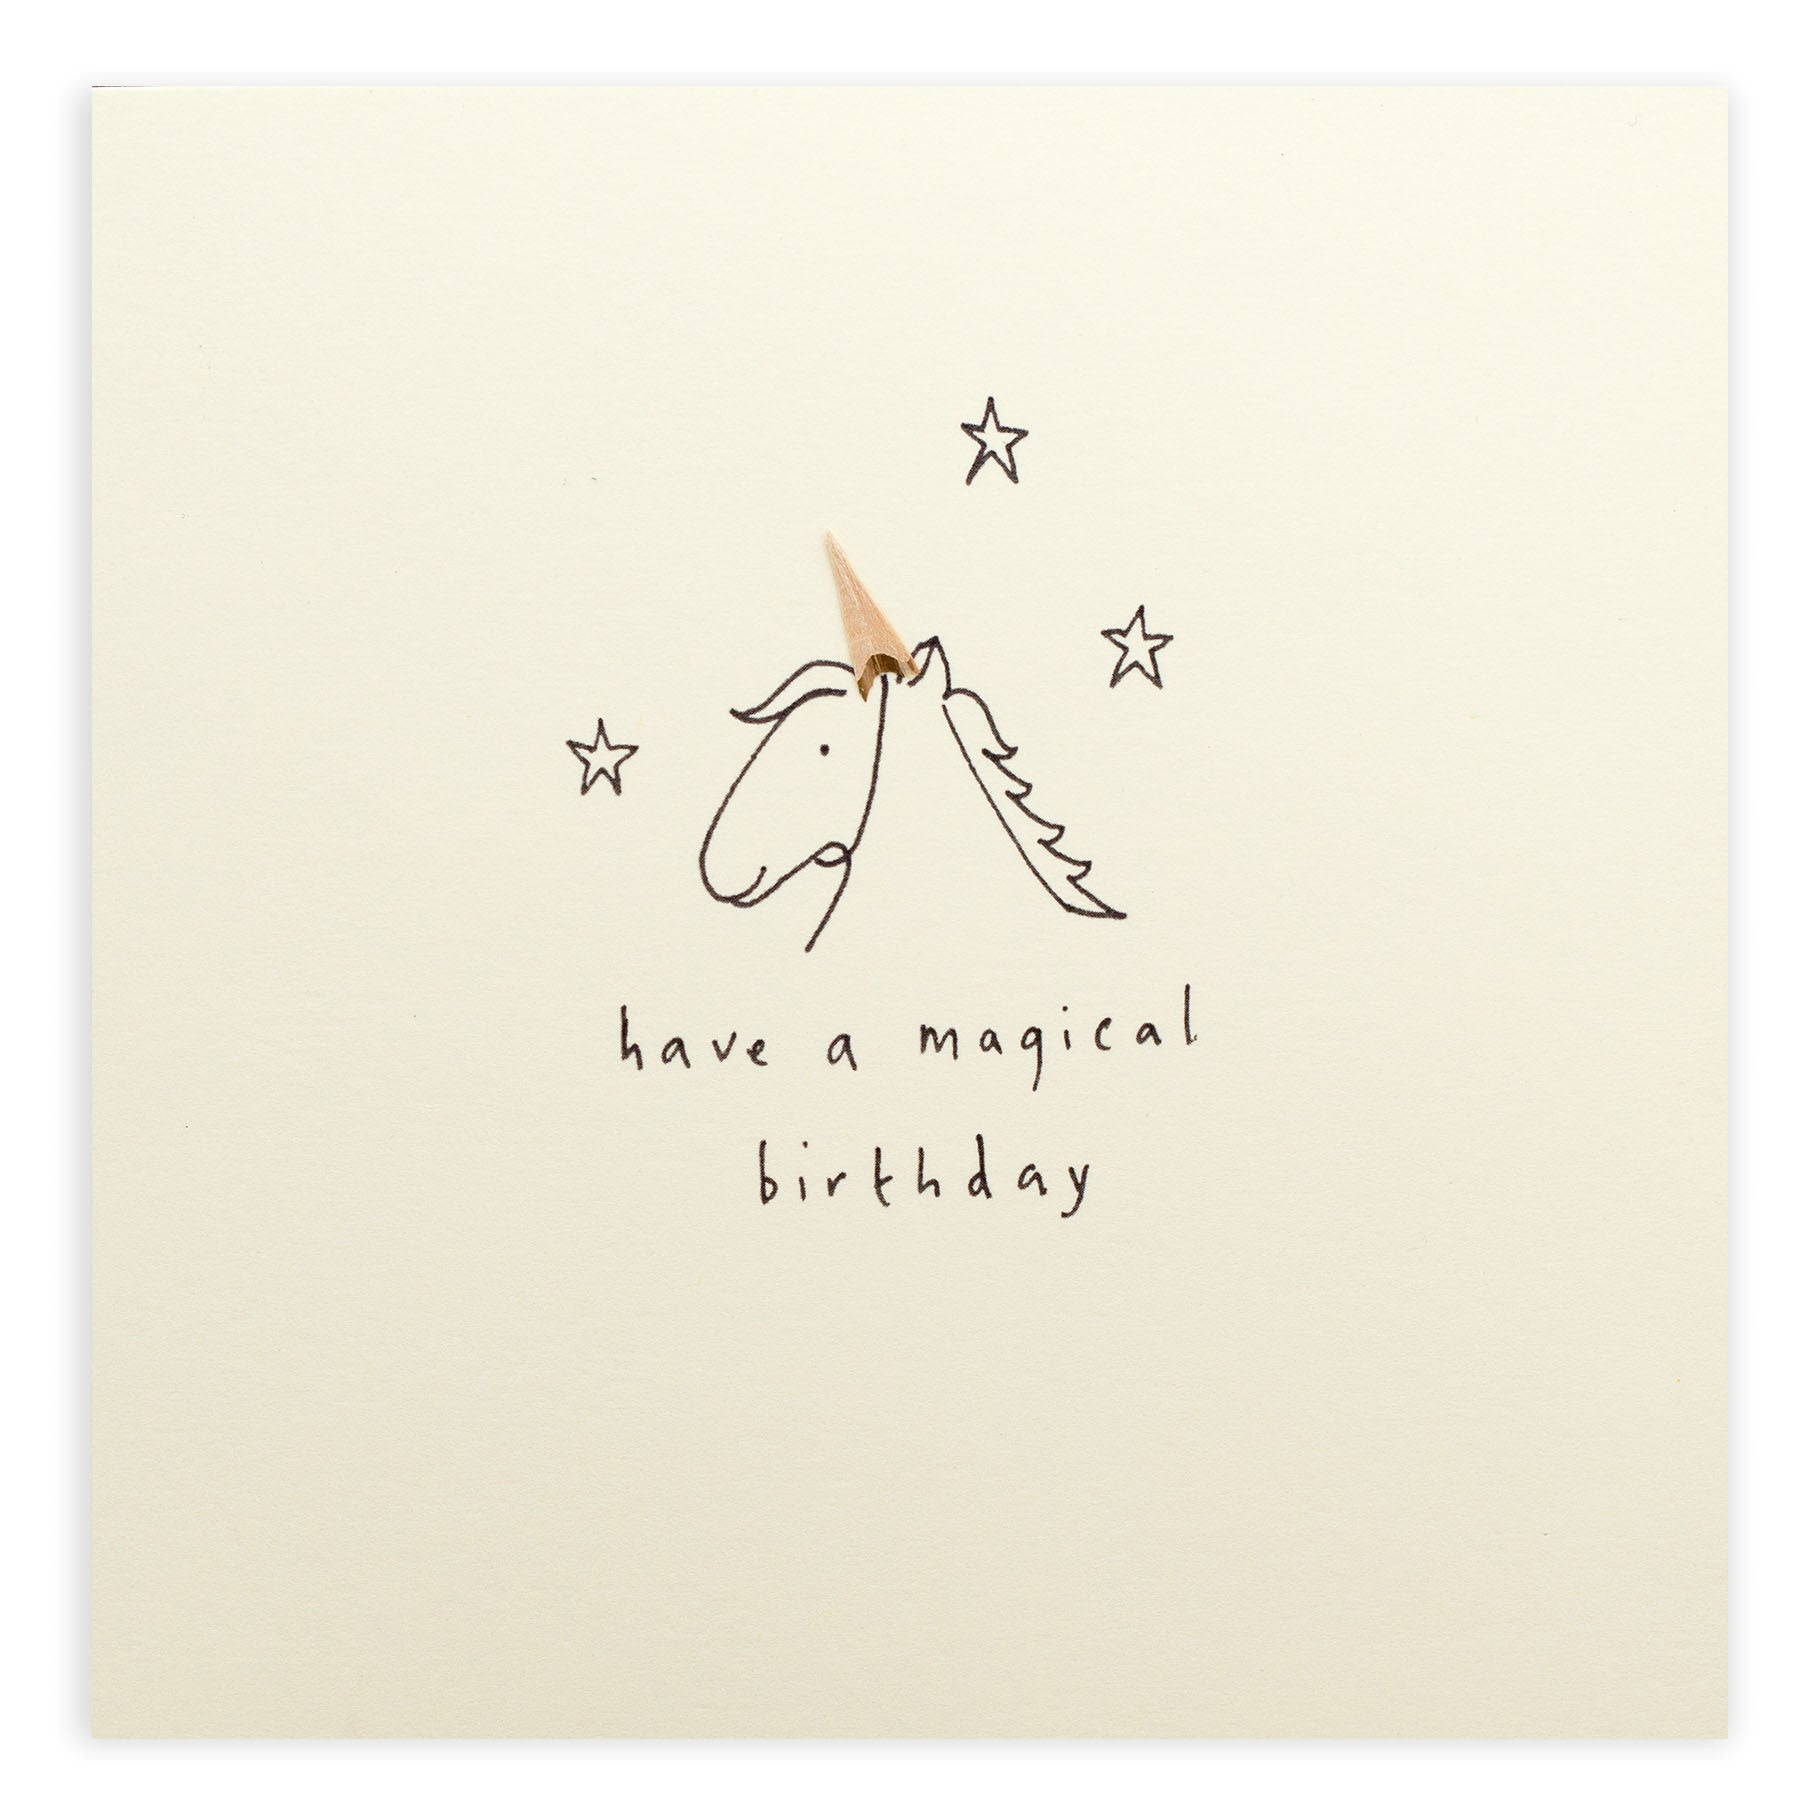 Greetings Cards - Ruth Jackson - Birthday Unicorn - How I Wonder.co.uk